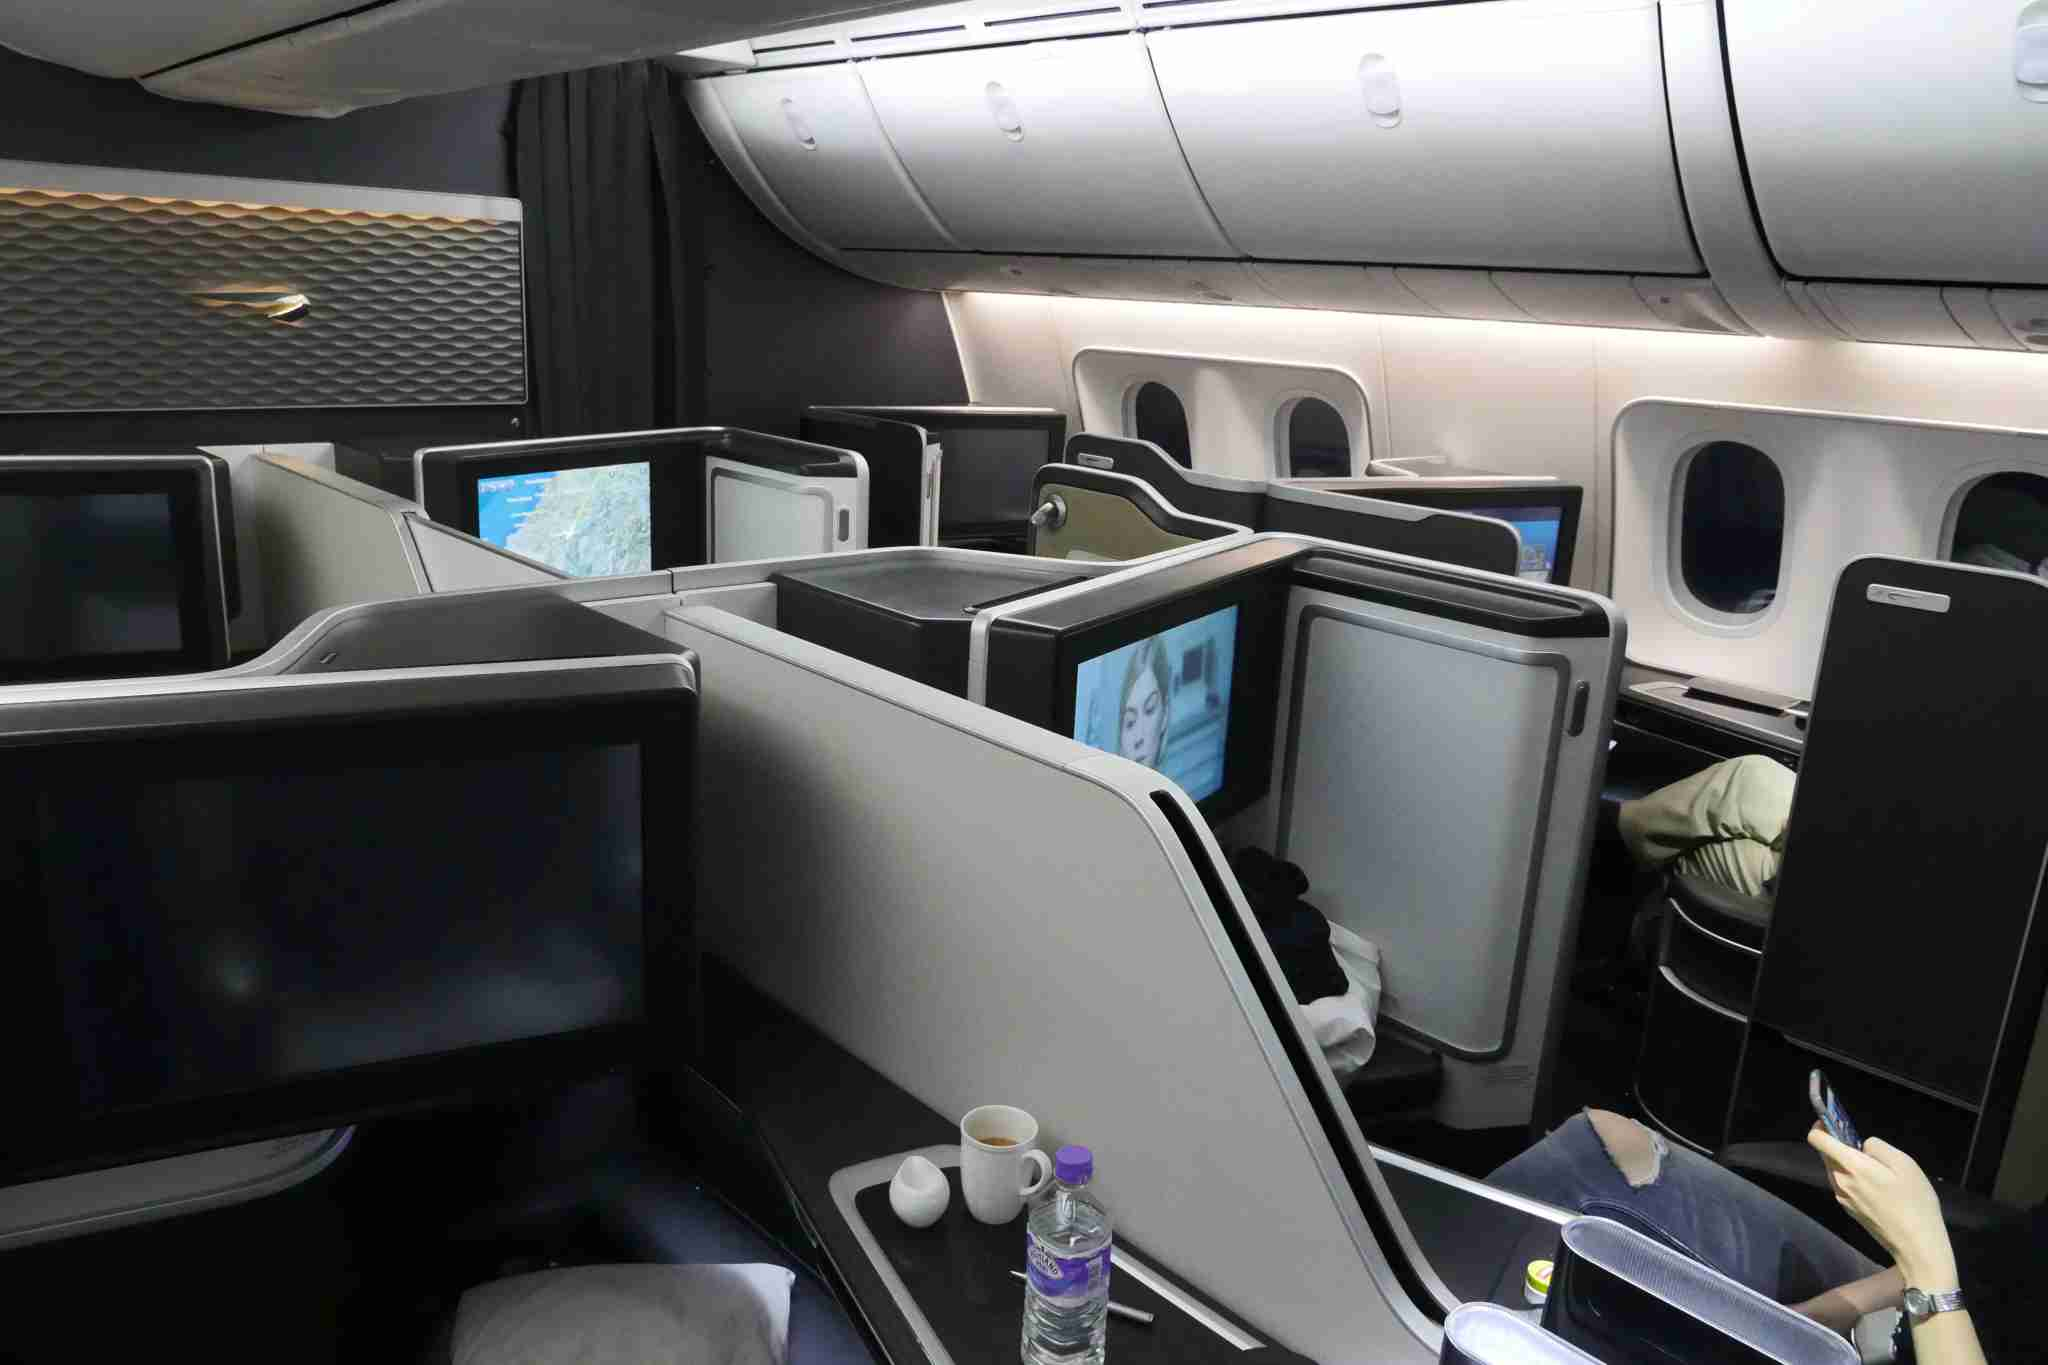 View across the 787-9 First class cabin